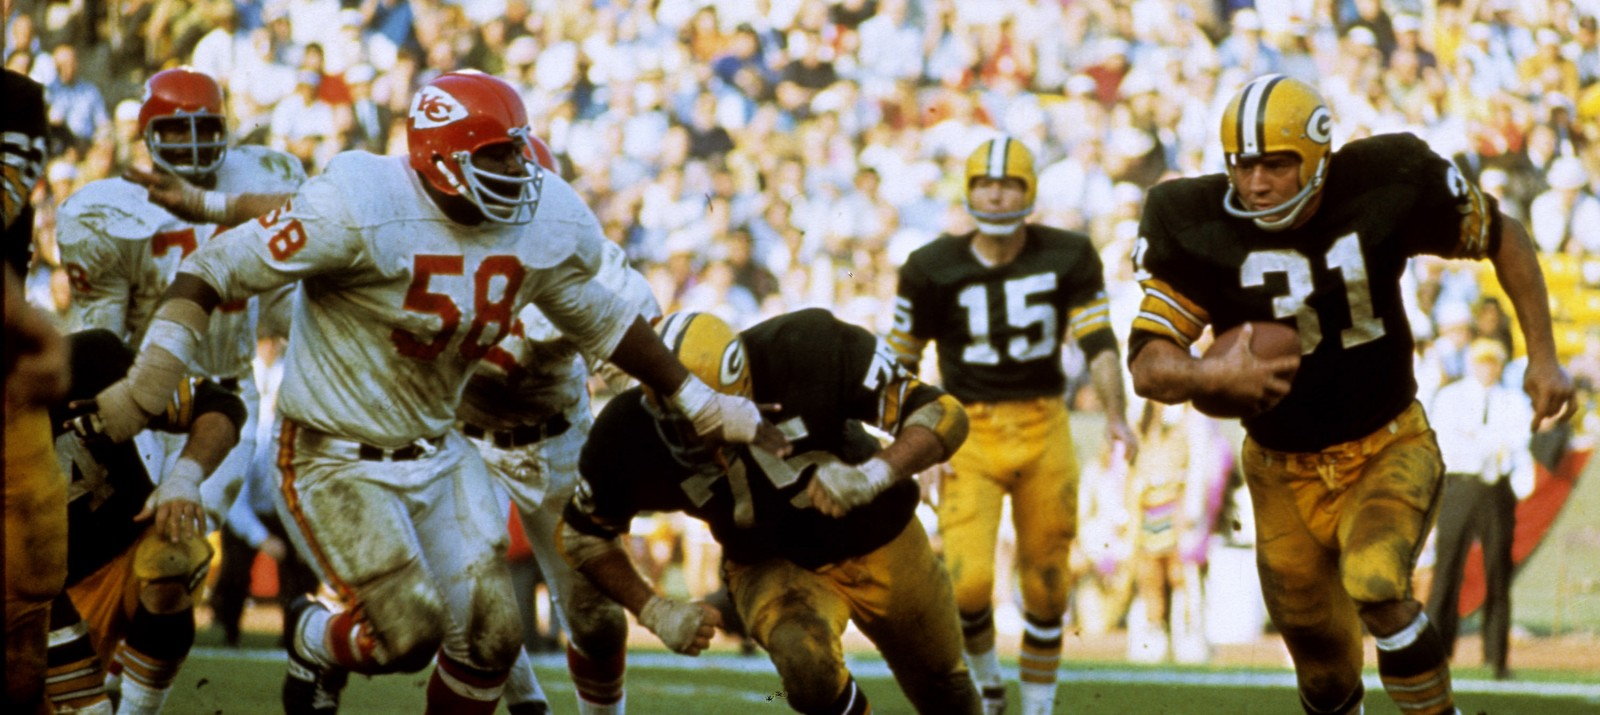 Kansas City Chiefs vs Green Bay Packers in Super Bowl I on January 15, 1967.